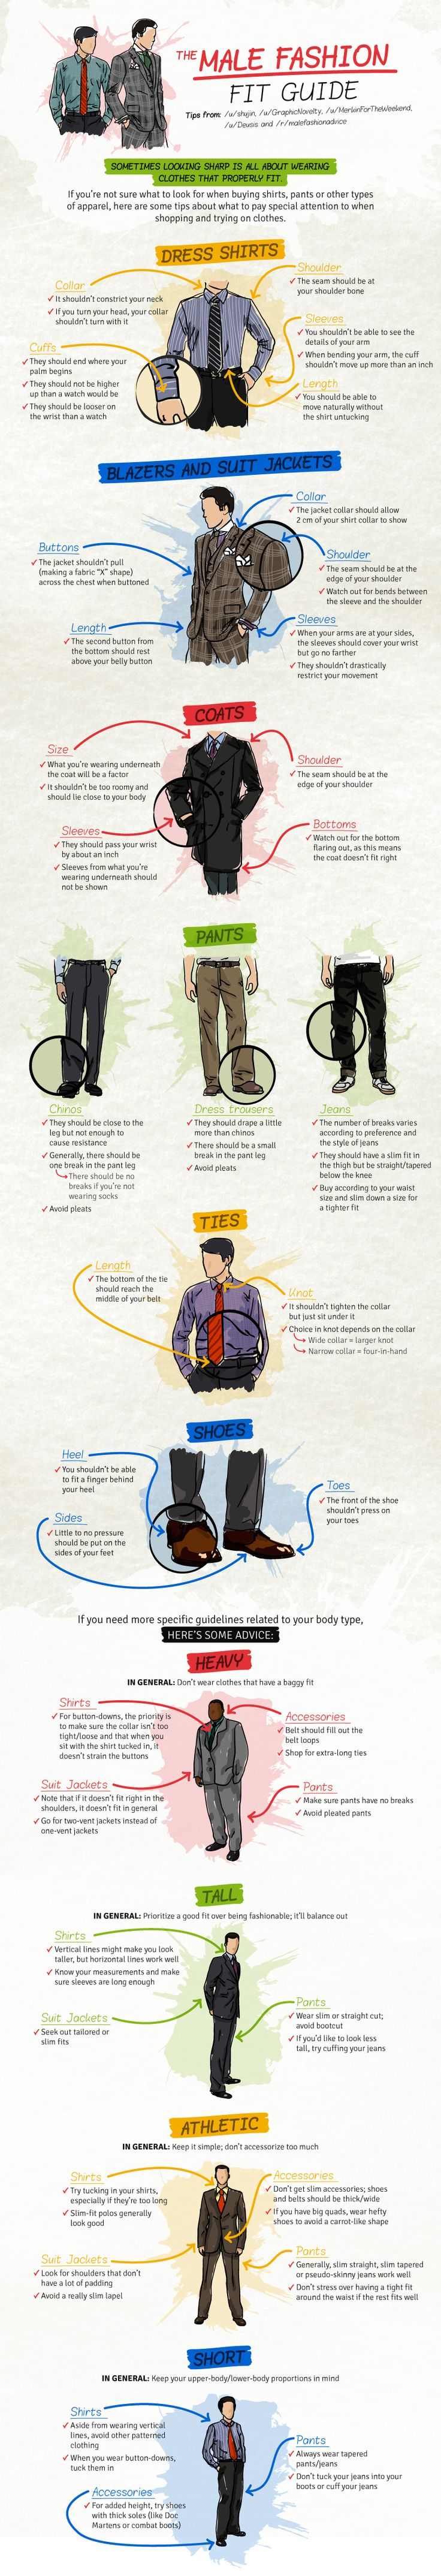 Infographic: Everything You Need To Know About Men's Fashion - DesignTAXI.com